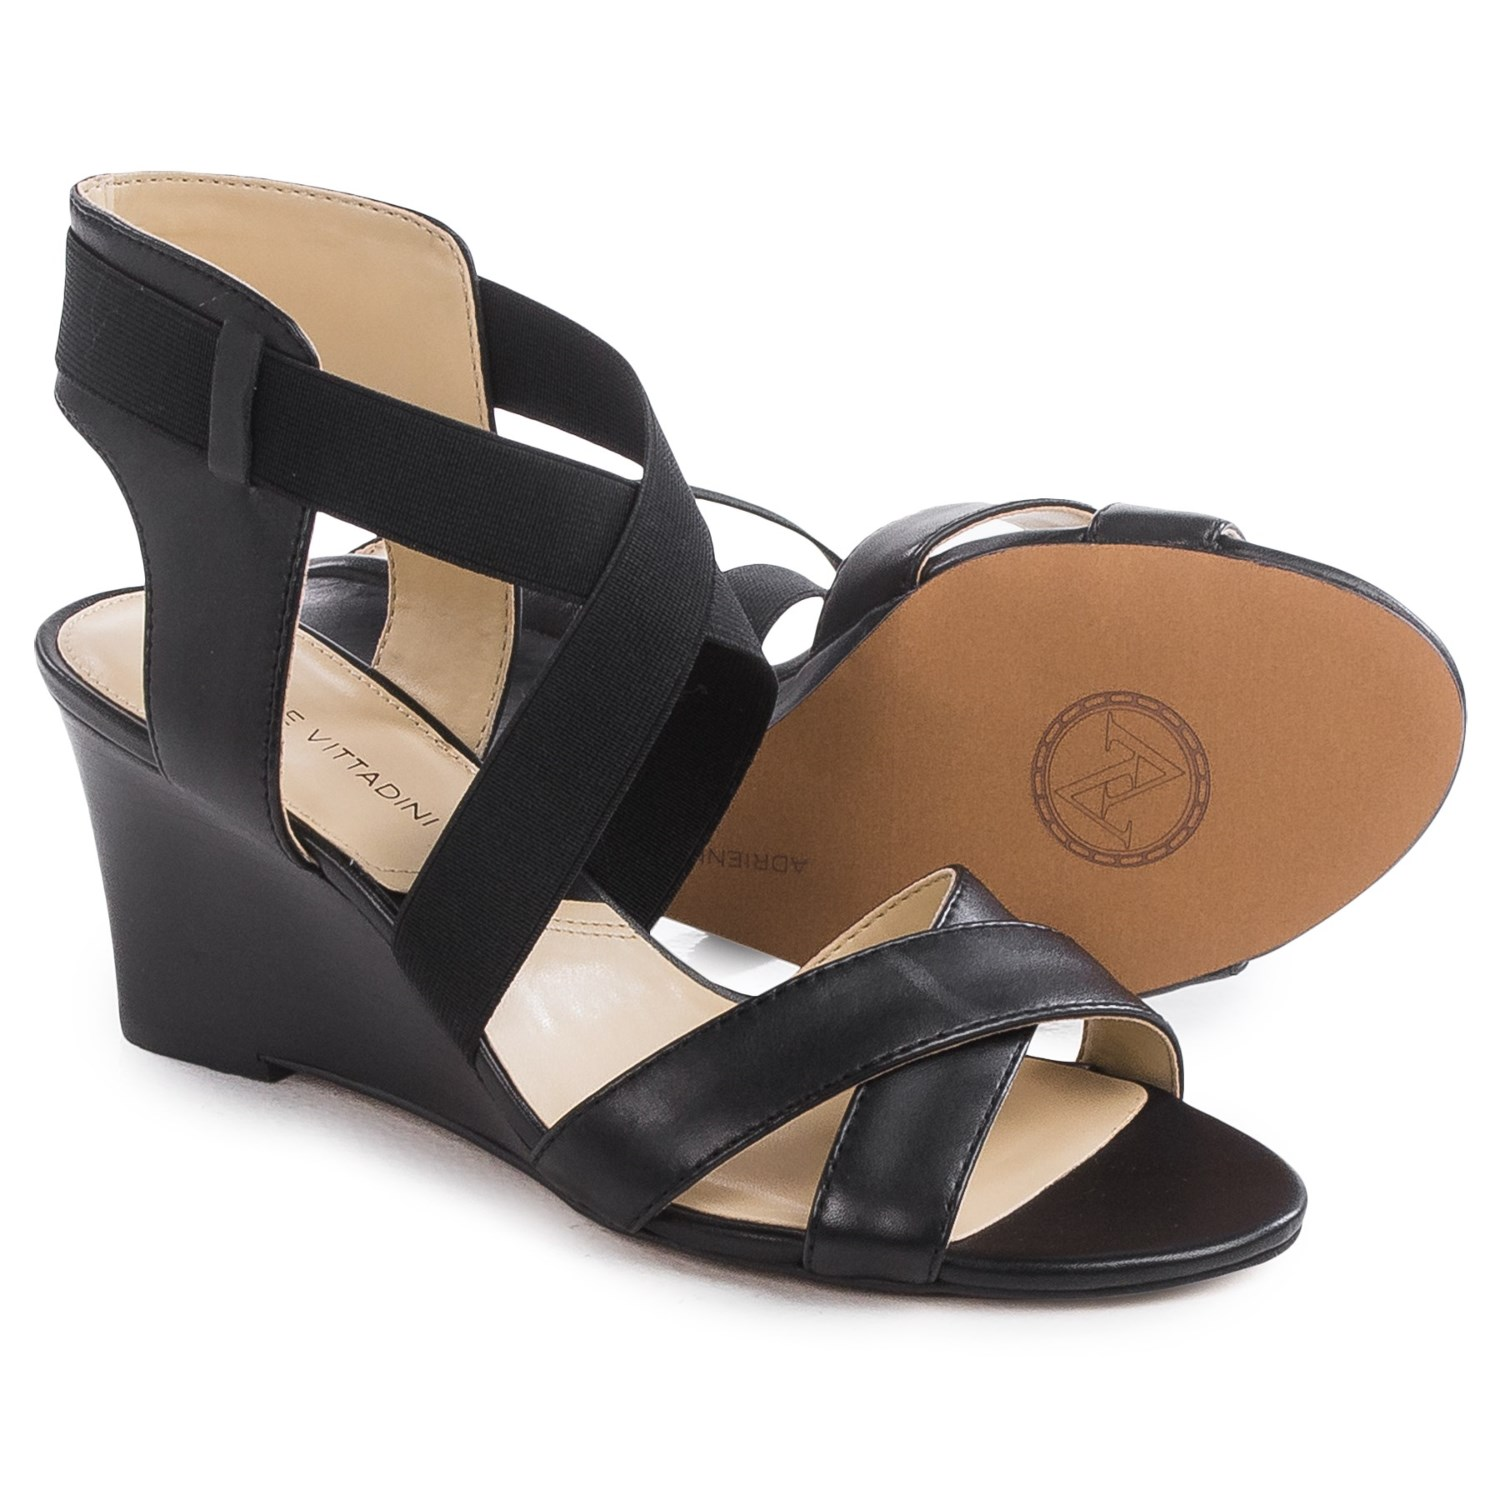 Sandals shoes comfortable - Stylish Well Made Comfortable Shoes